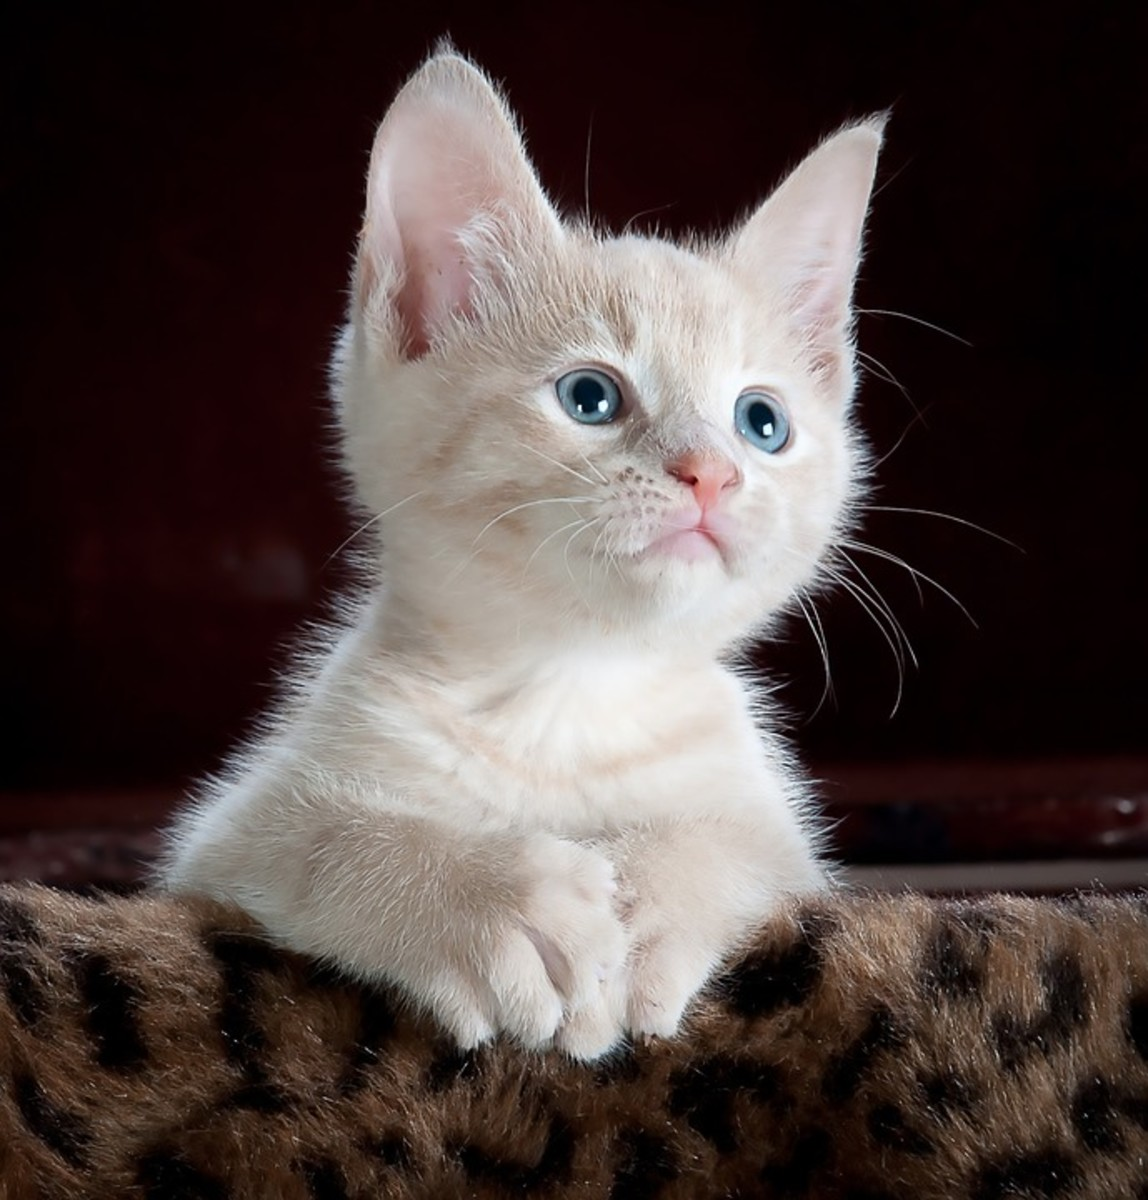 This sweet kitten could do great with the African name Daliah.